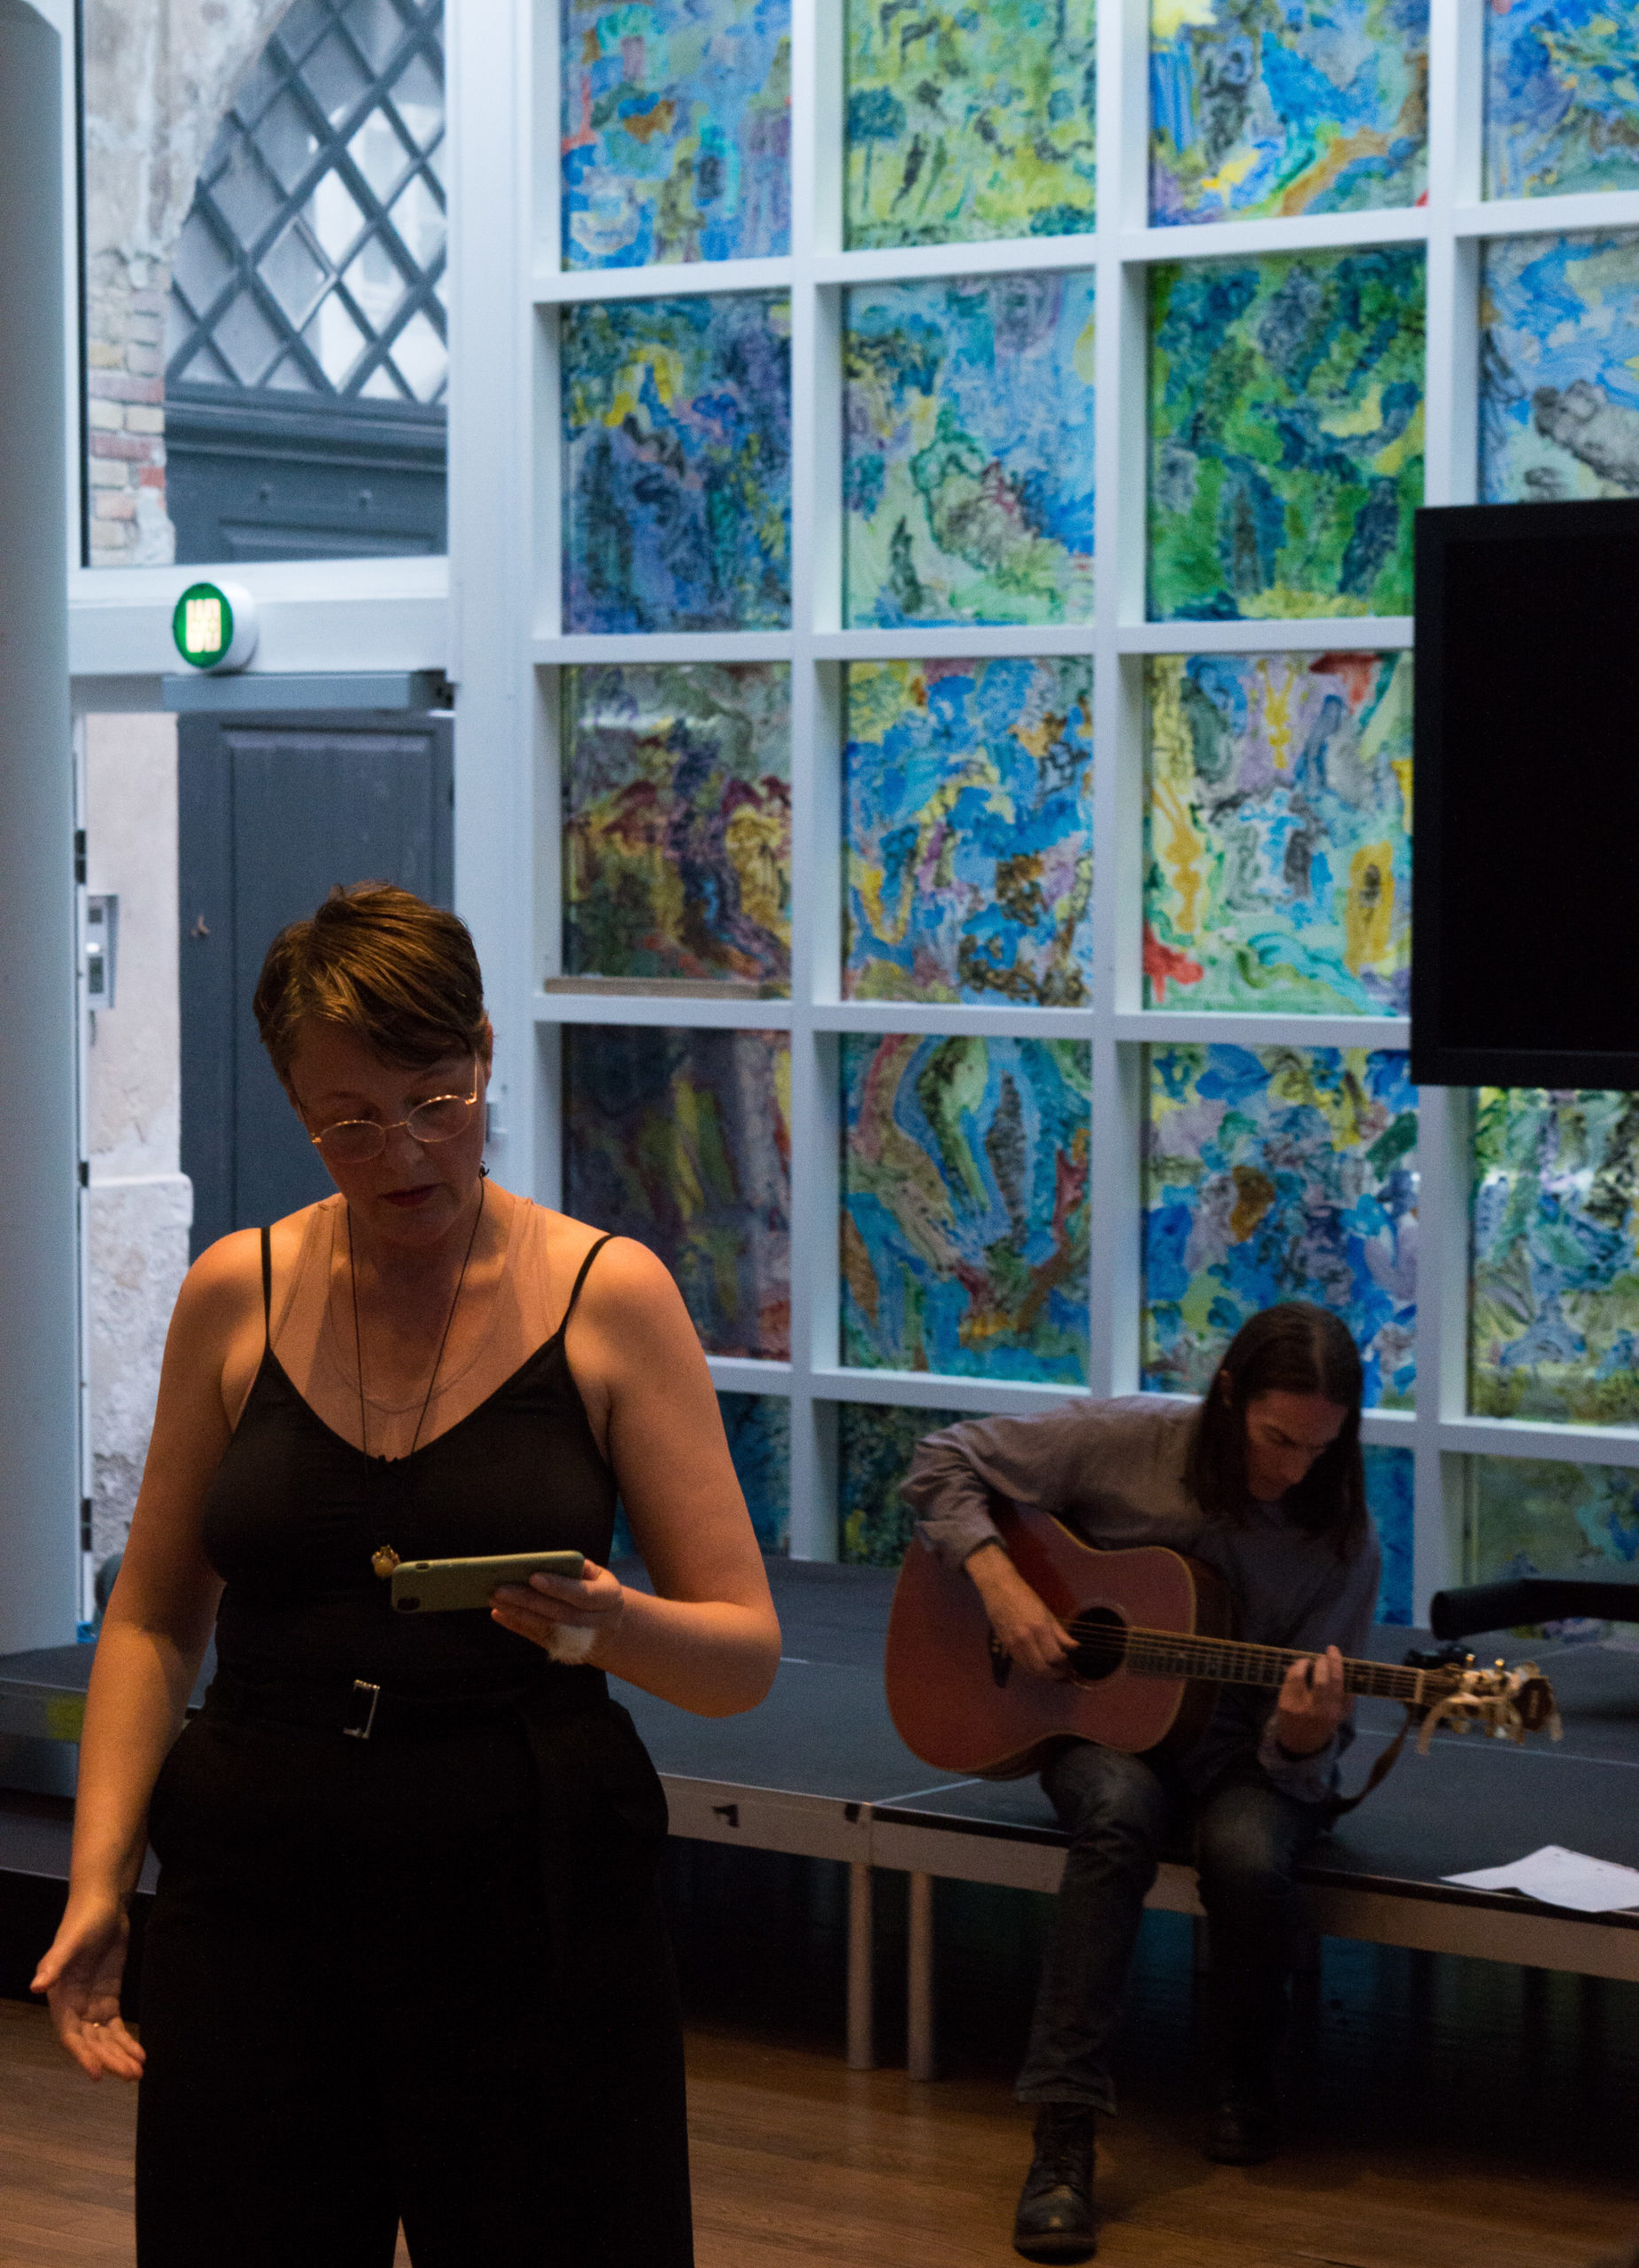 PERFORMANCE AT THE DANISH NATIONAL MUSEUM